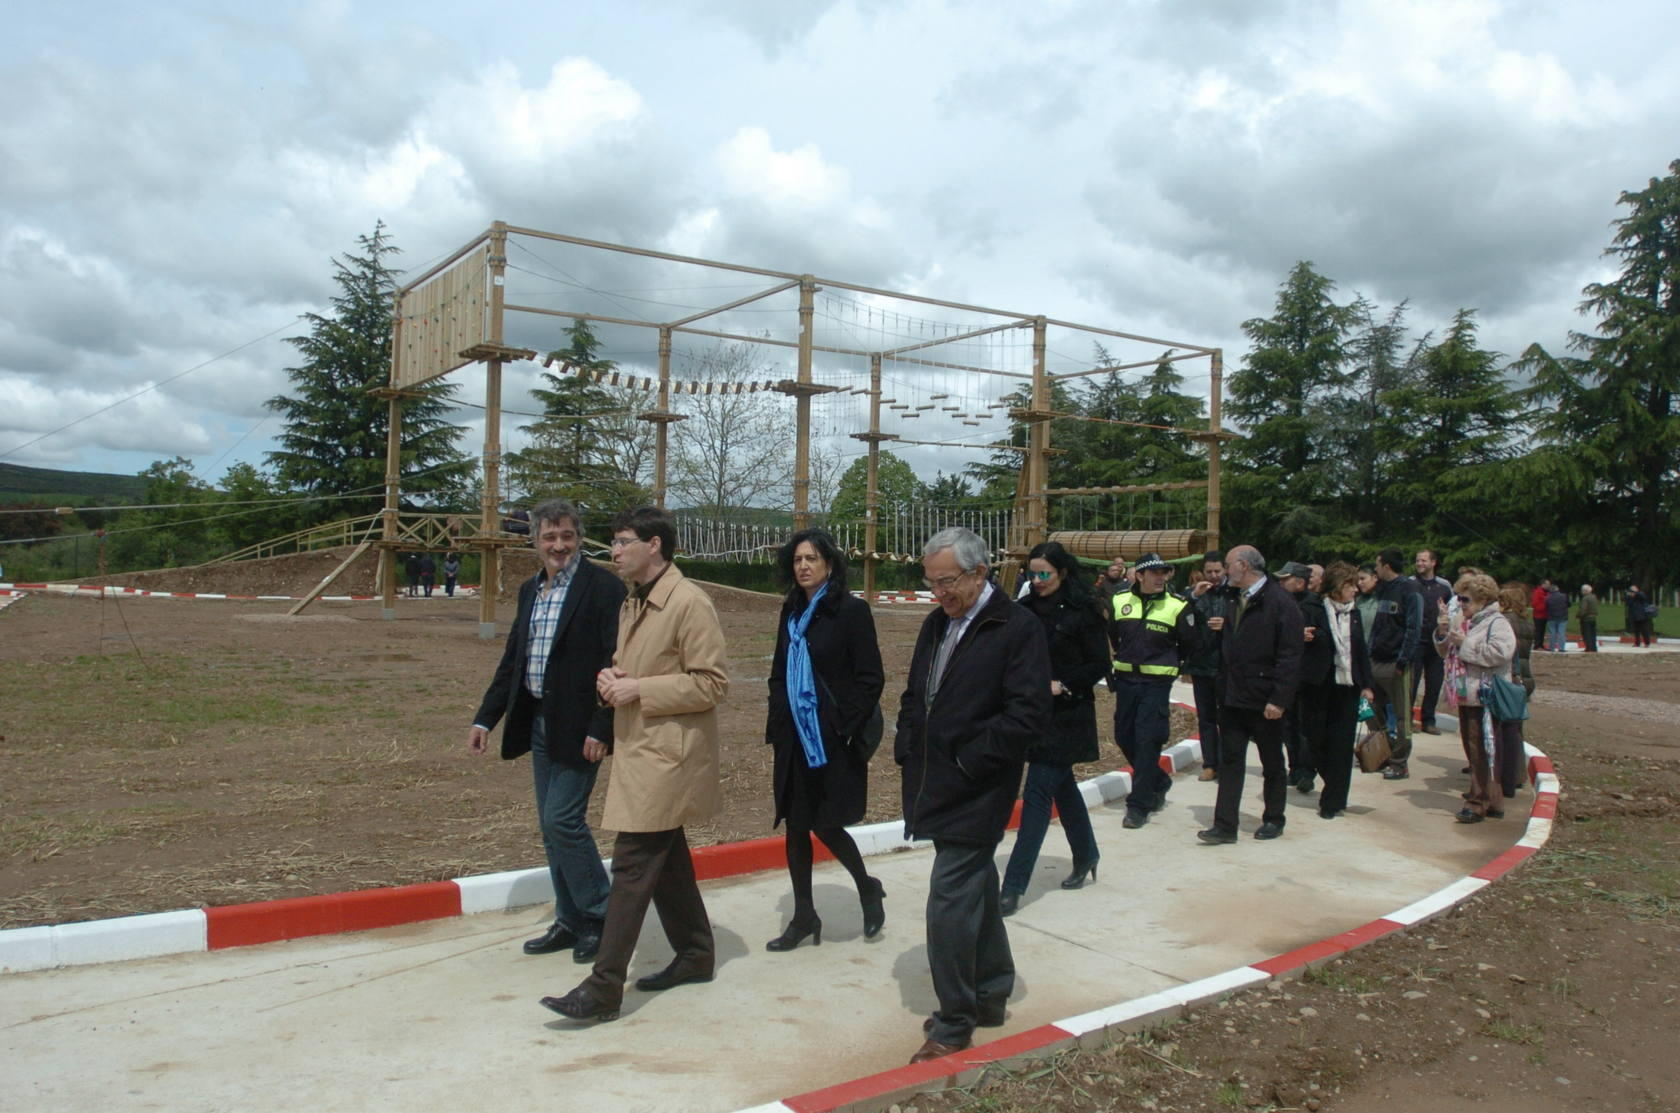 Inauguraci&oacute;n del parque infantil 'Ojapark', de Santo Domigo